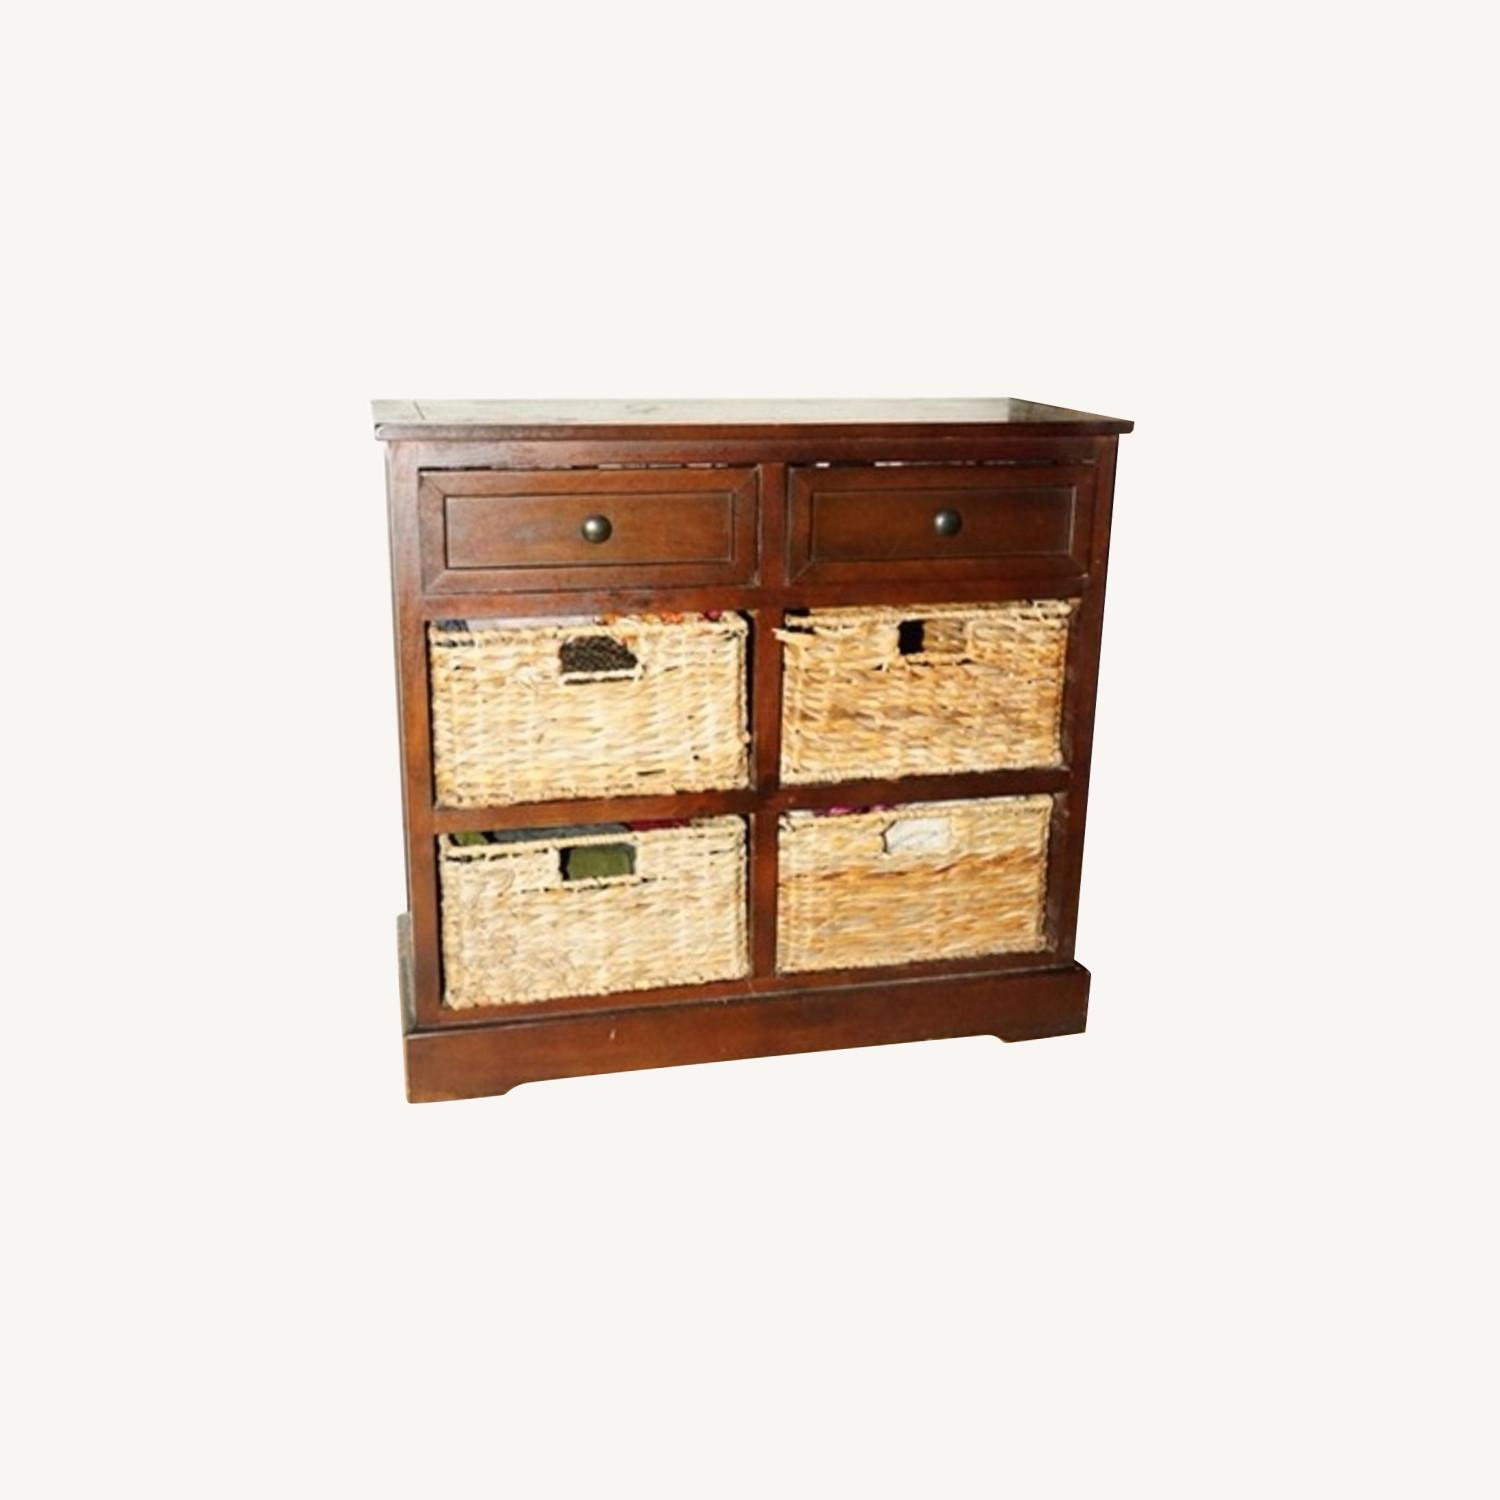 Functional Fine Art Small Wood Dresser w/ Baskets